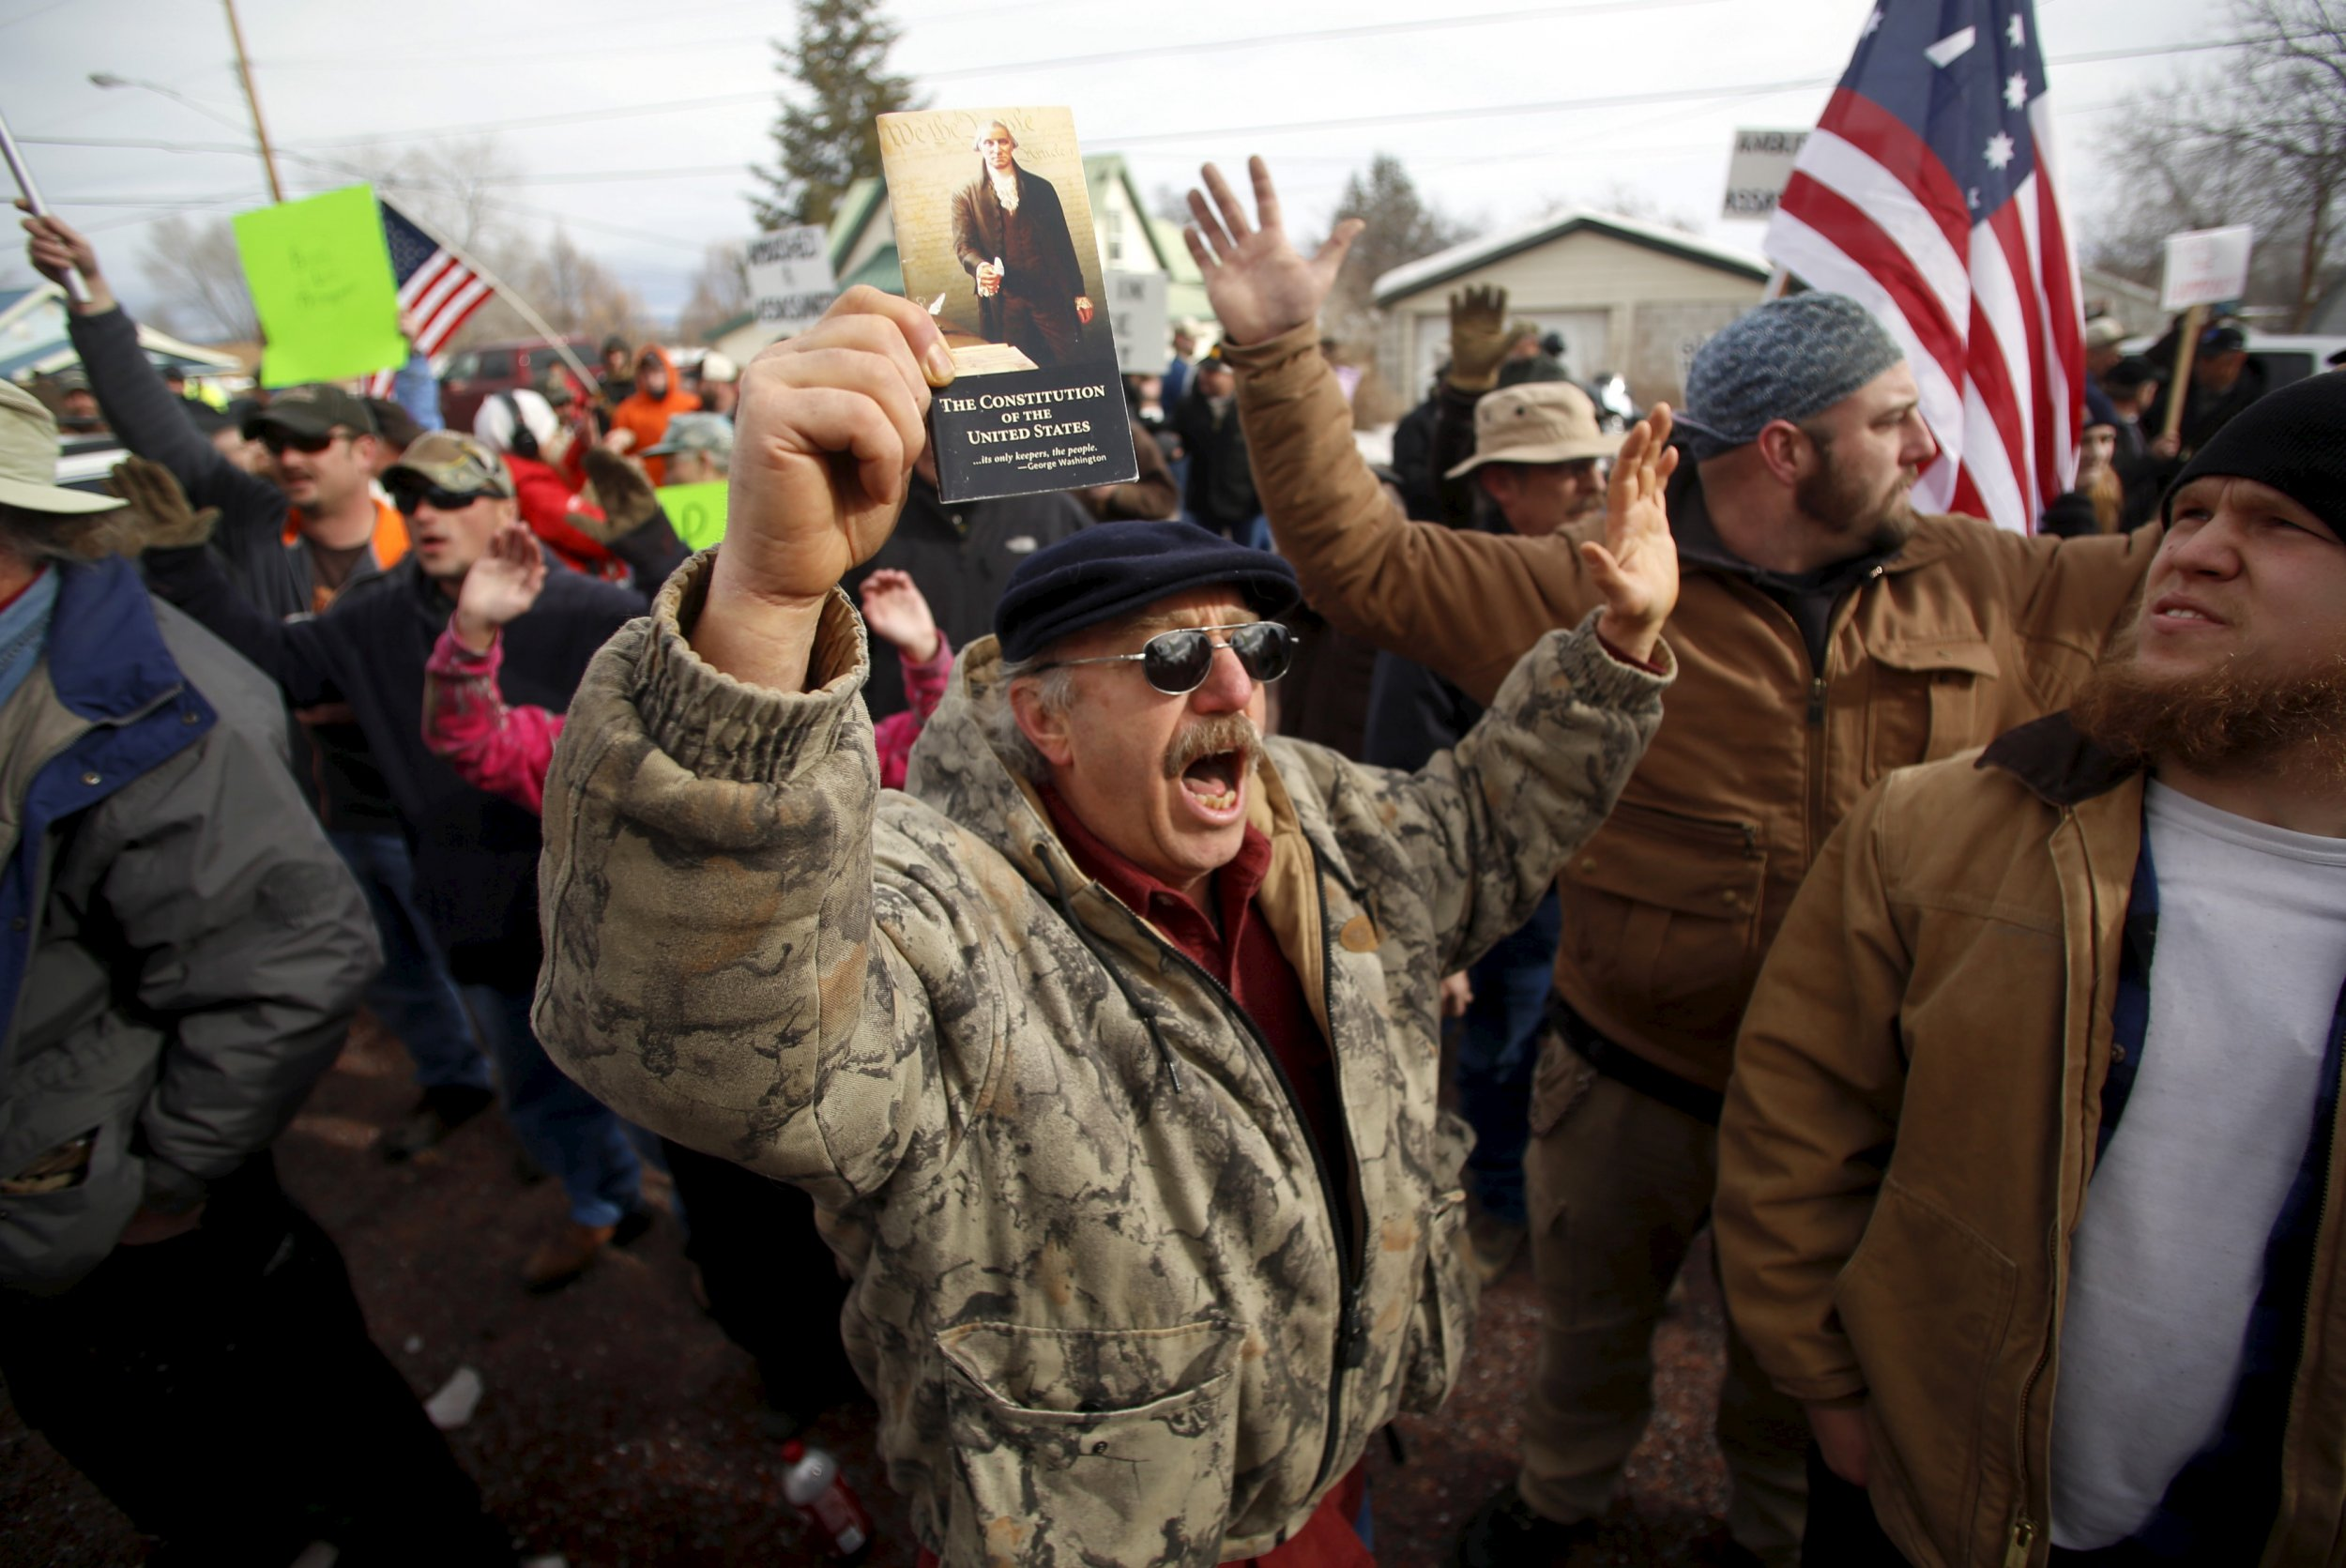 41-Day Oregon Standoff Ends as Last Occupier Turns Himself In